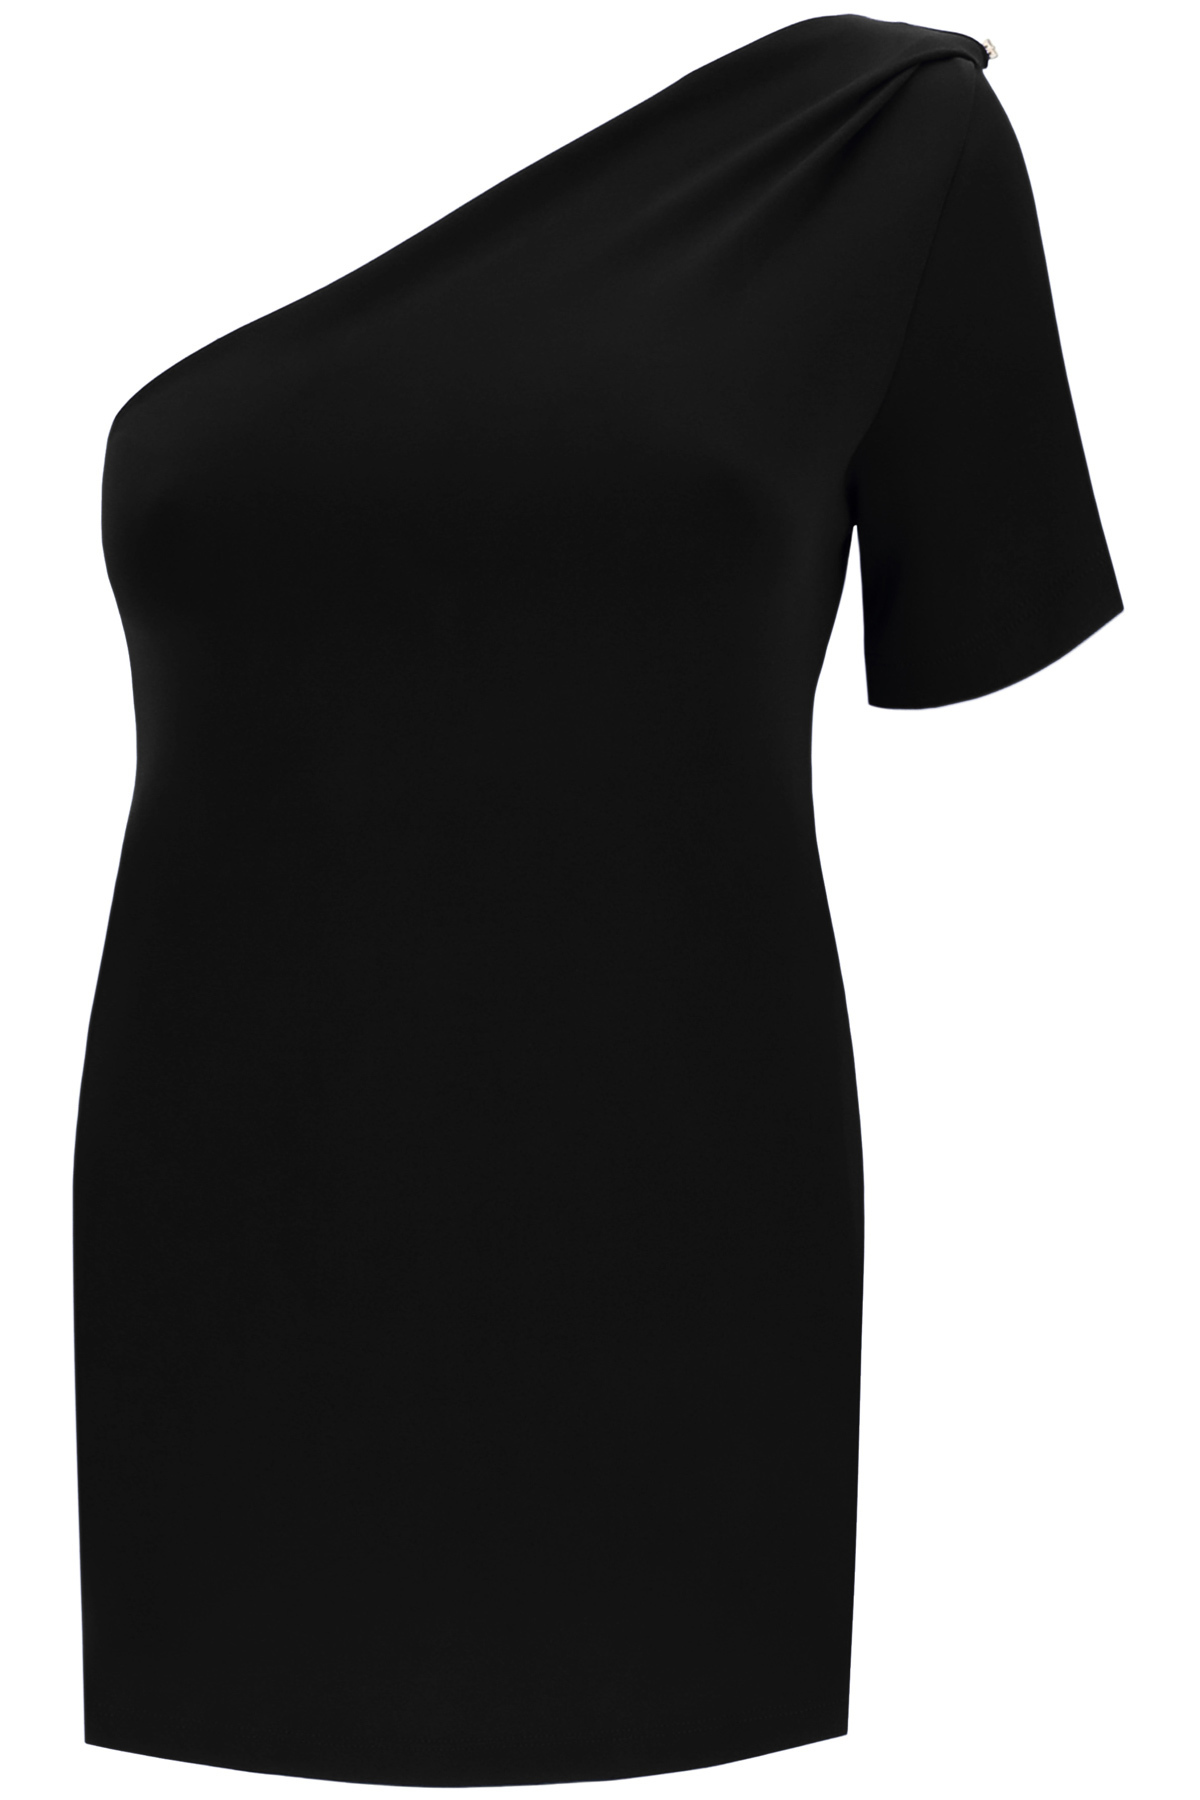 Sportmax top clima in jersey